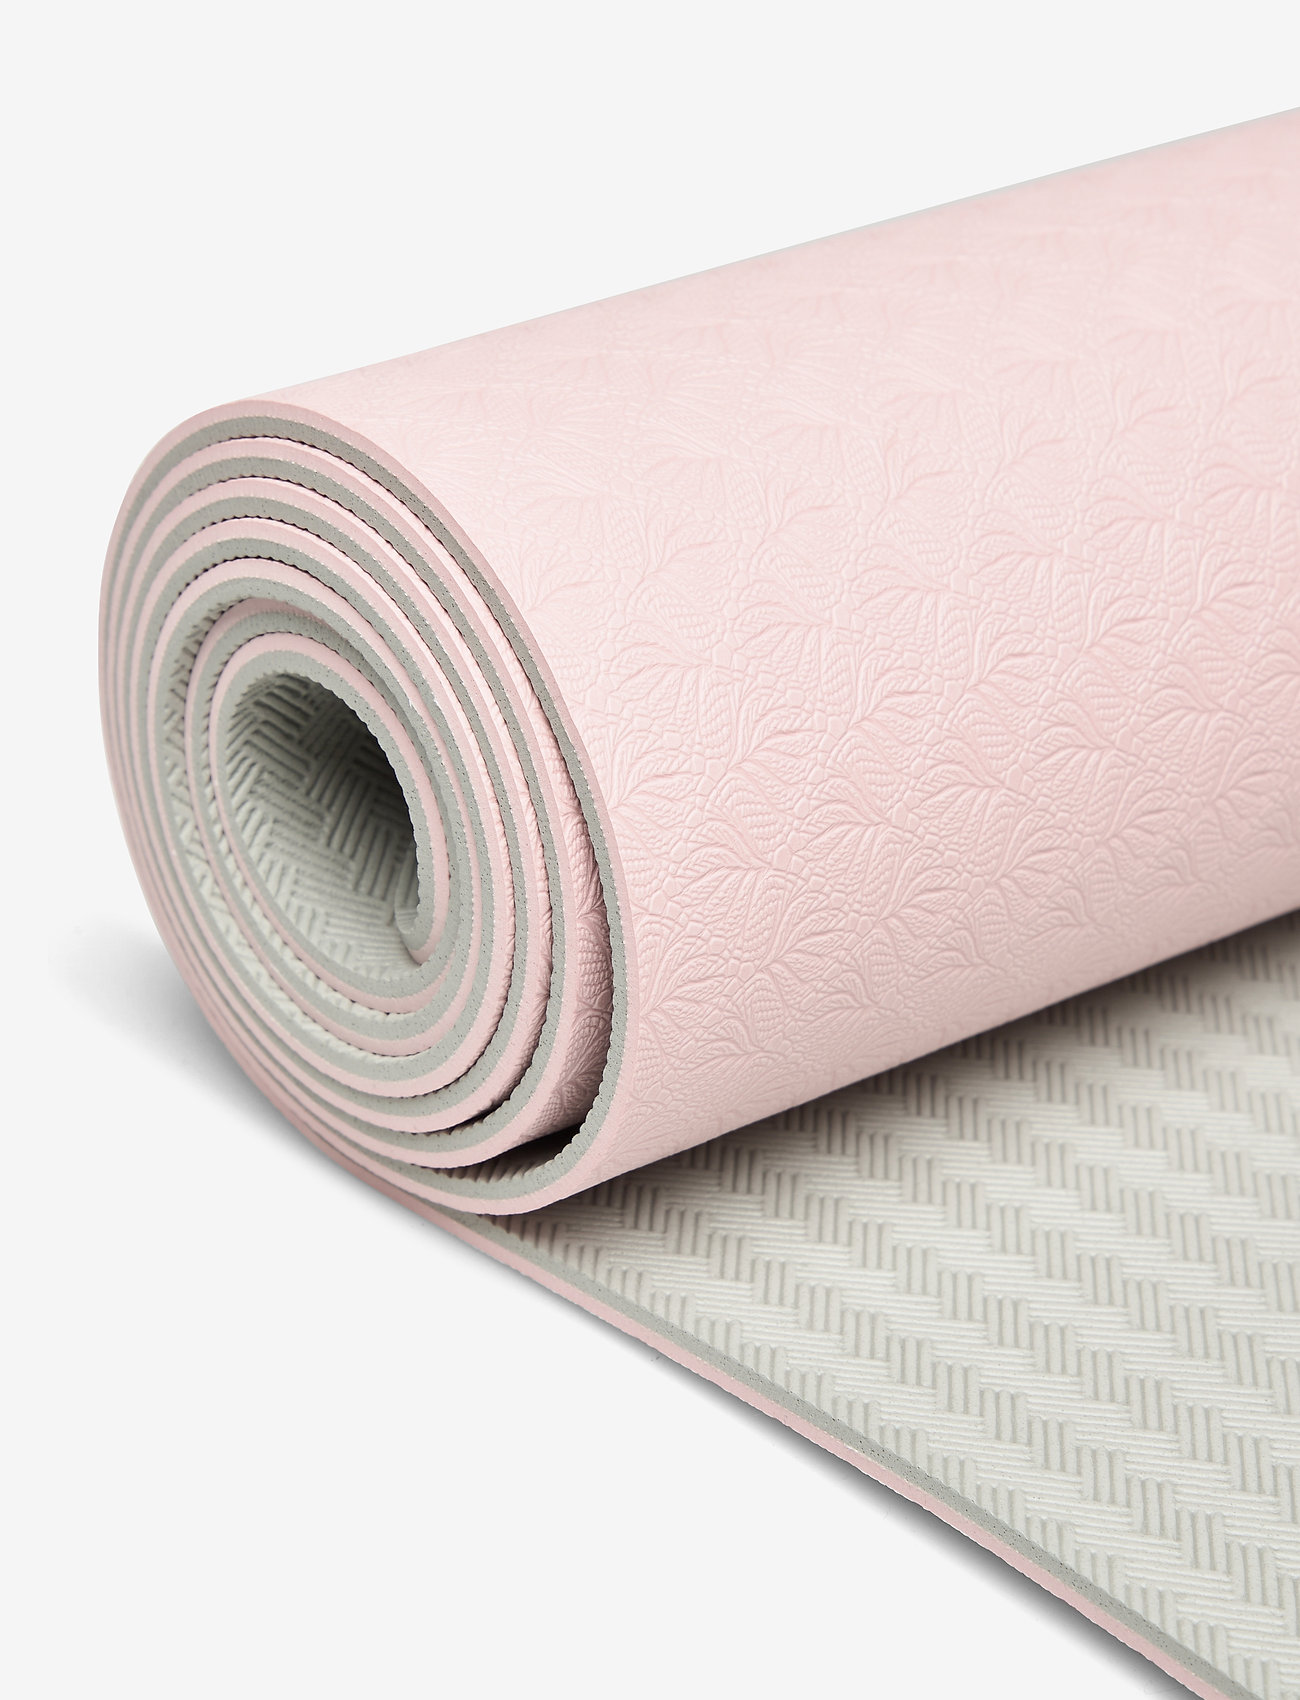 Casall - Yoga mat position 4mm - maty i sprzęt do jogi - lucky pink/grey - 1